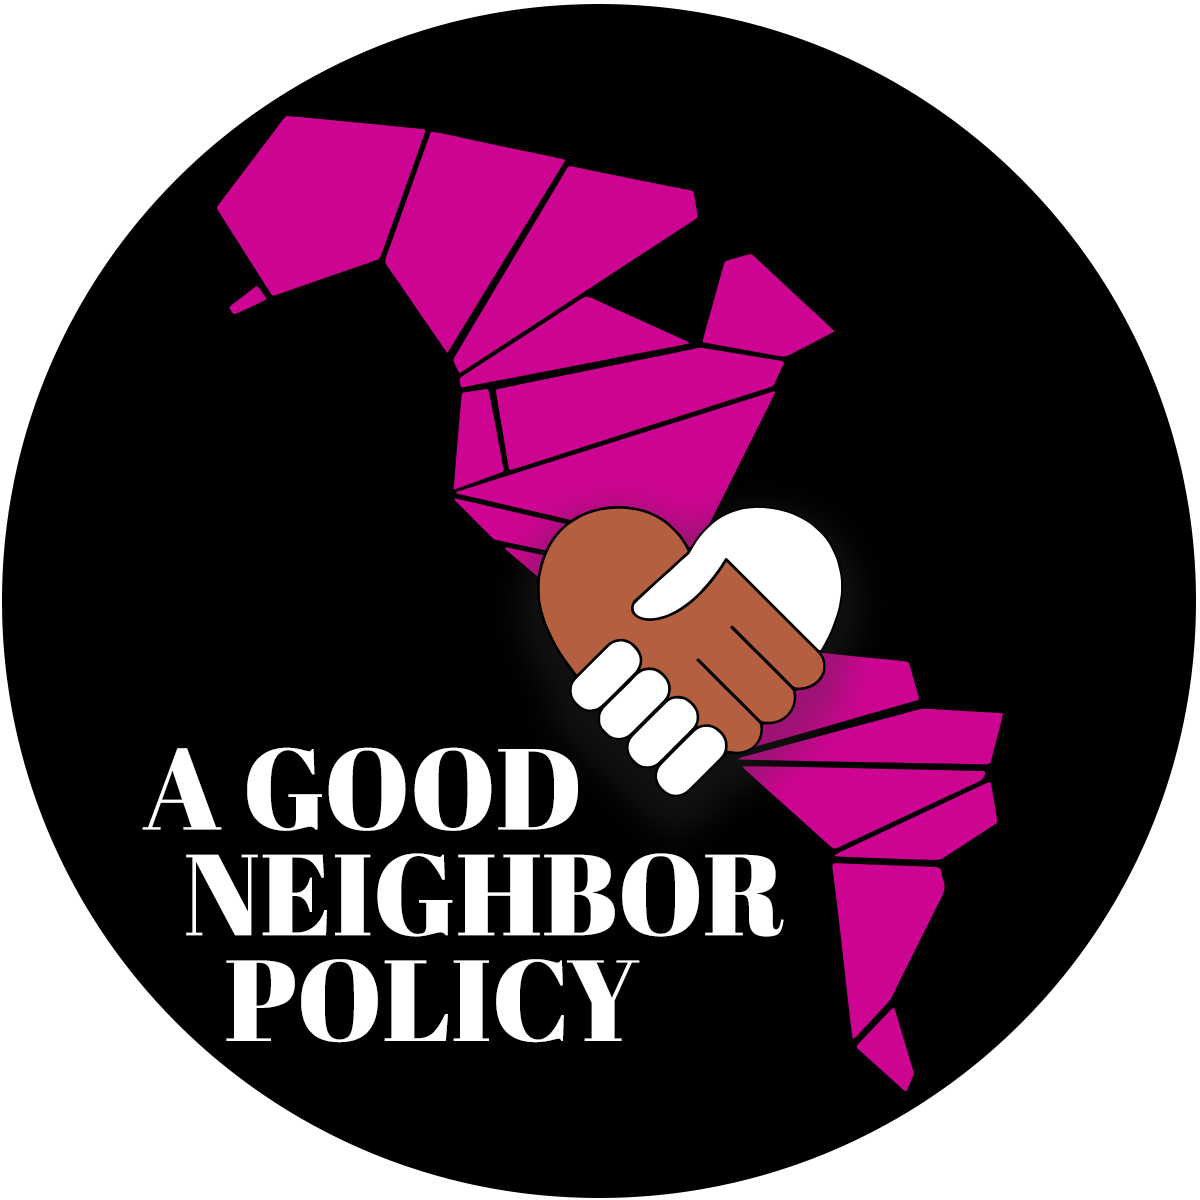 |Join more than 100 organizations in urging Biden and Trump campaigns to establish a real Good Neighbor policy for Latin America and the Caribbean.